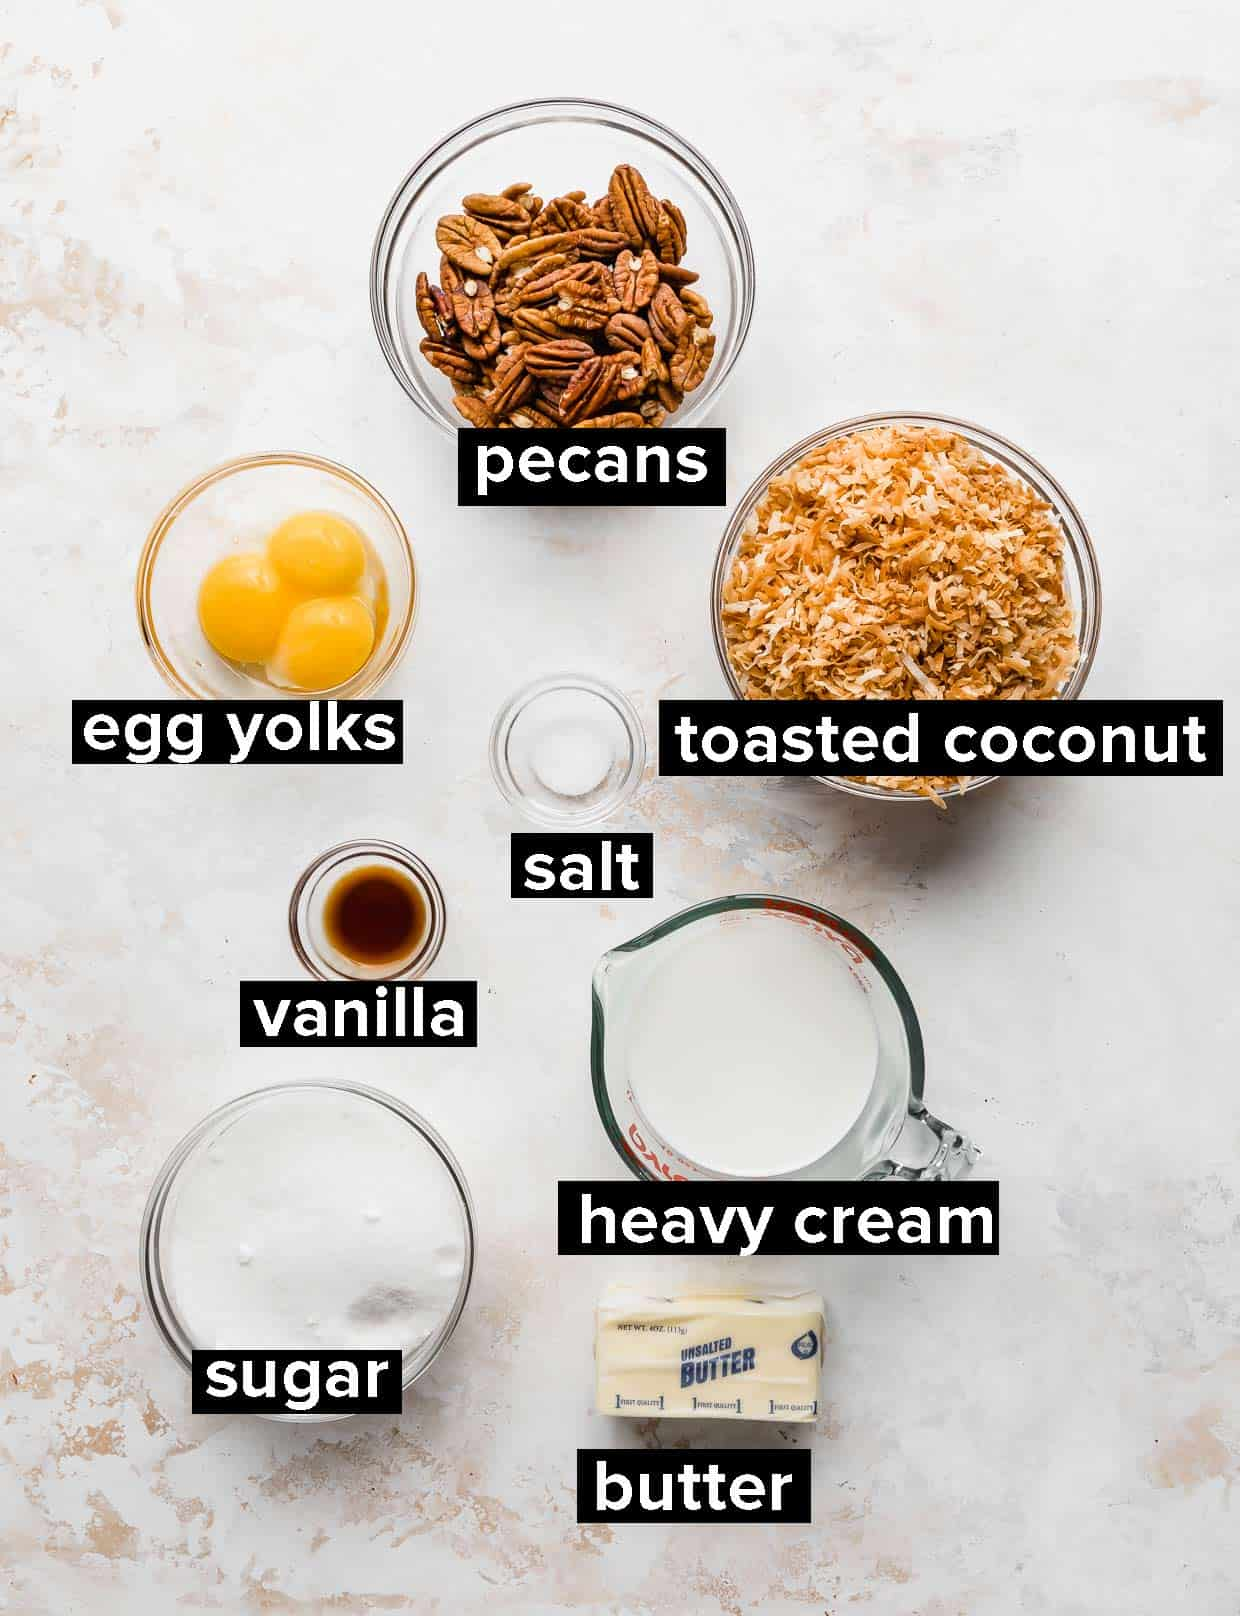 Ingredients used to make coconut pecan frosting, on a white textured background.